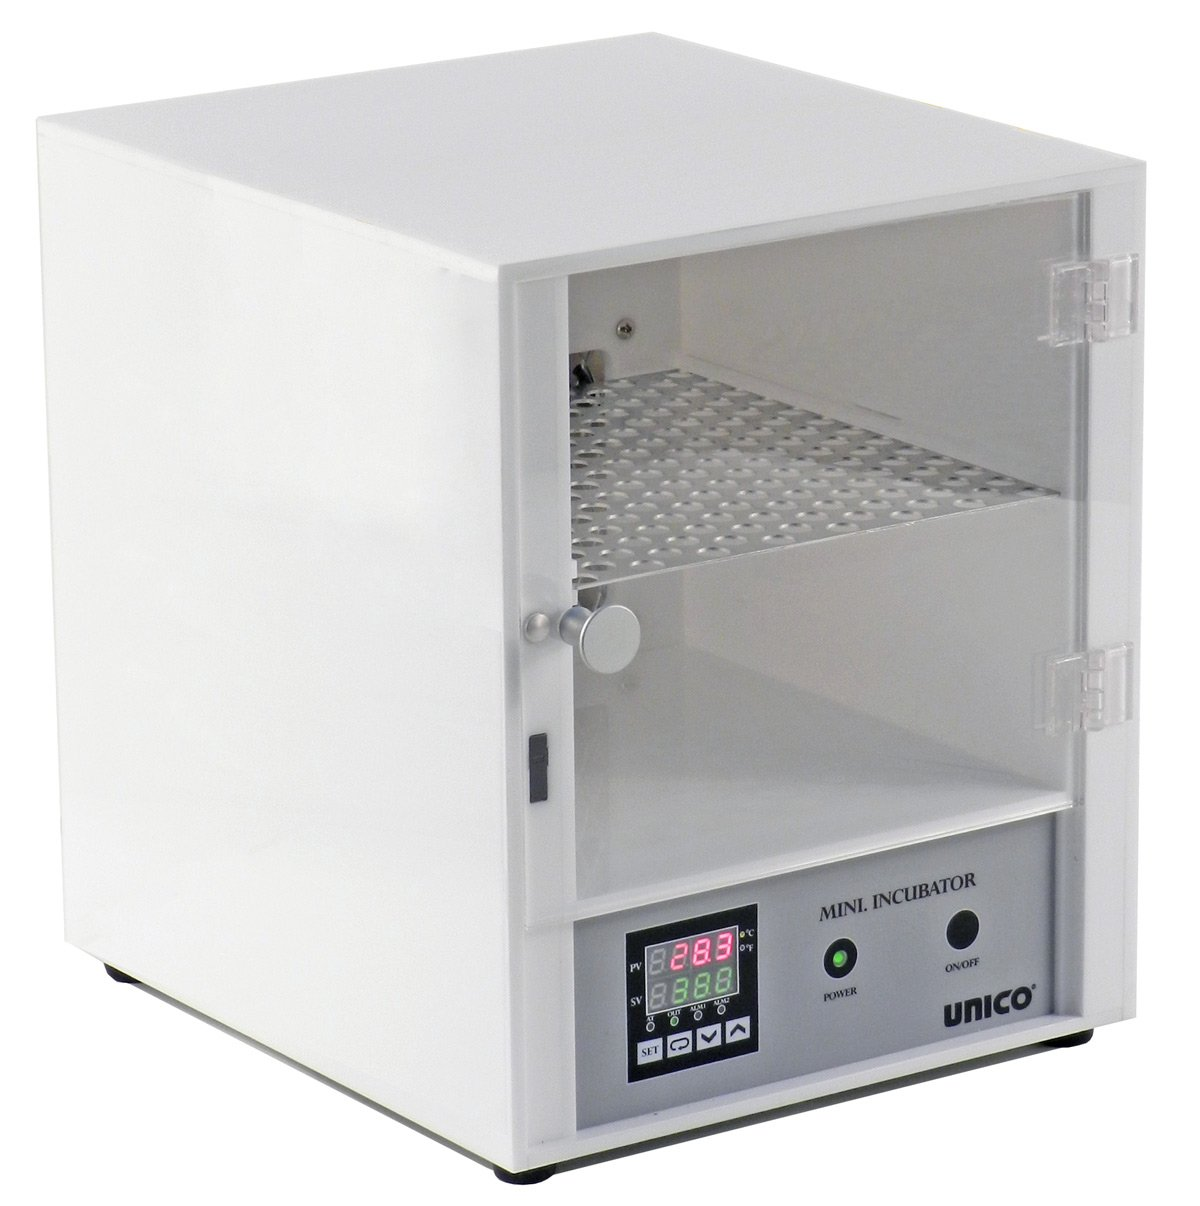 UNICO L-CU60 Laboratory Incubator, Ambient to 60 Degree C, 6 L Capacity, 110V